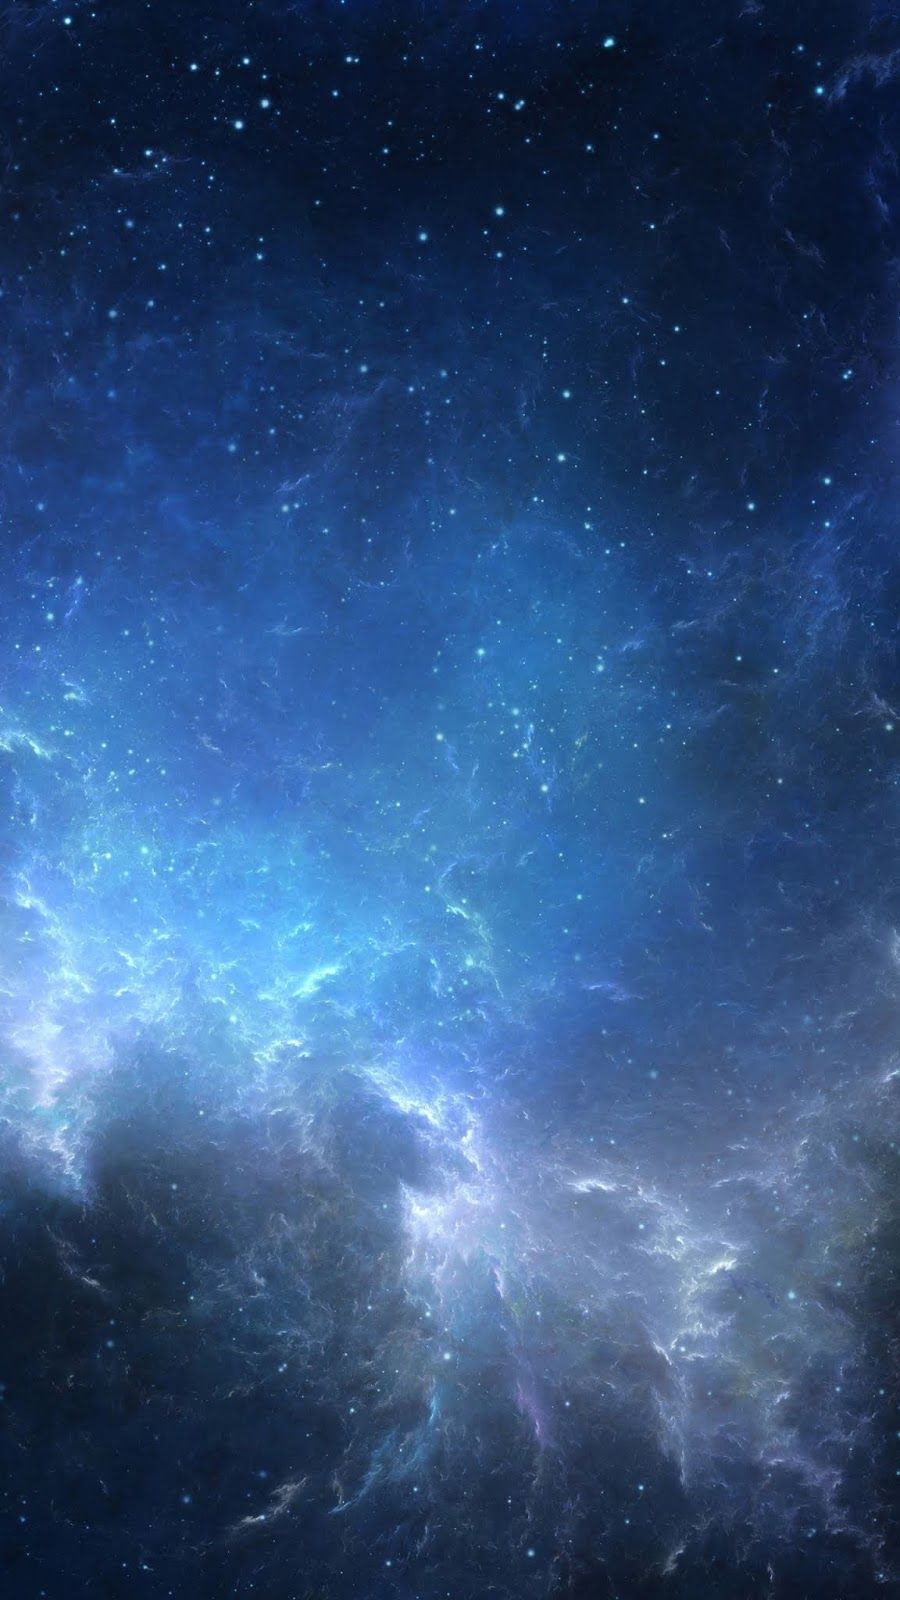 Stars In Space Space Phone Wallpaper Hd Galaxy Wallpaper Galaxy Wallpaper